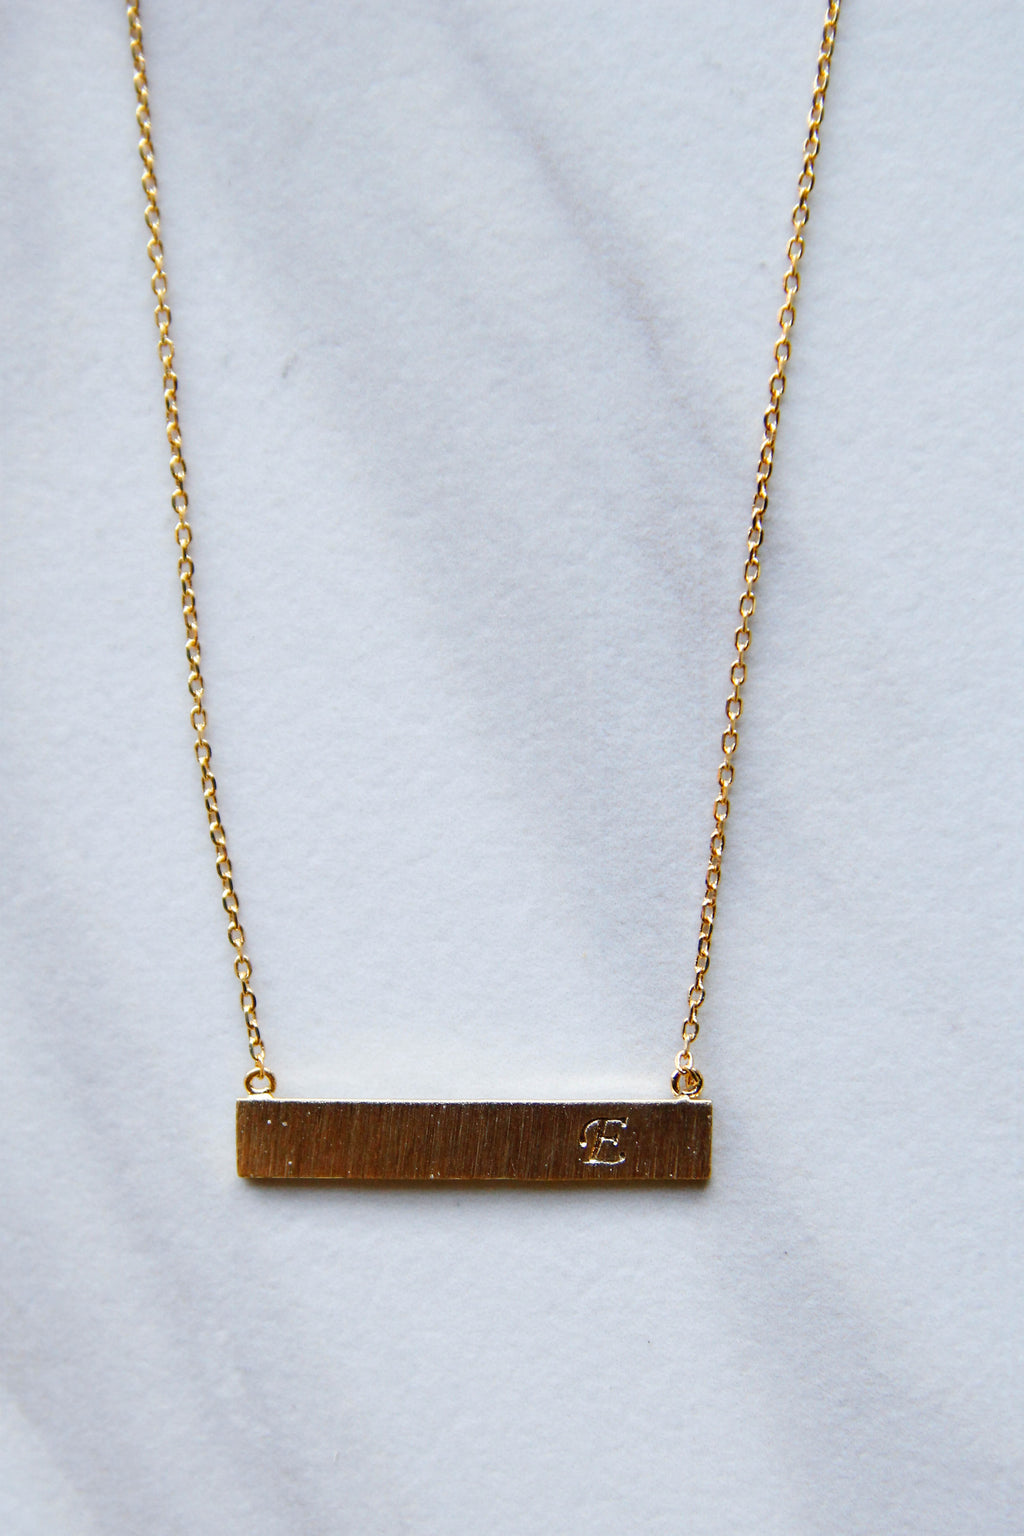 Gold Engraved Initial E Necklace